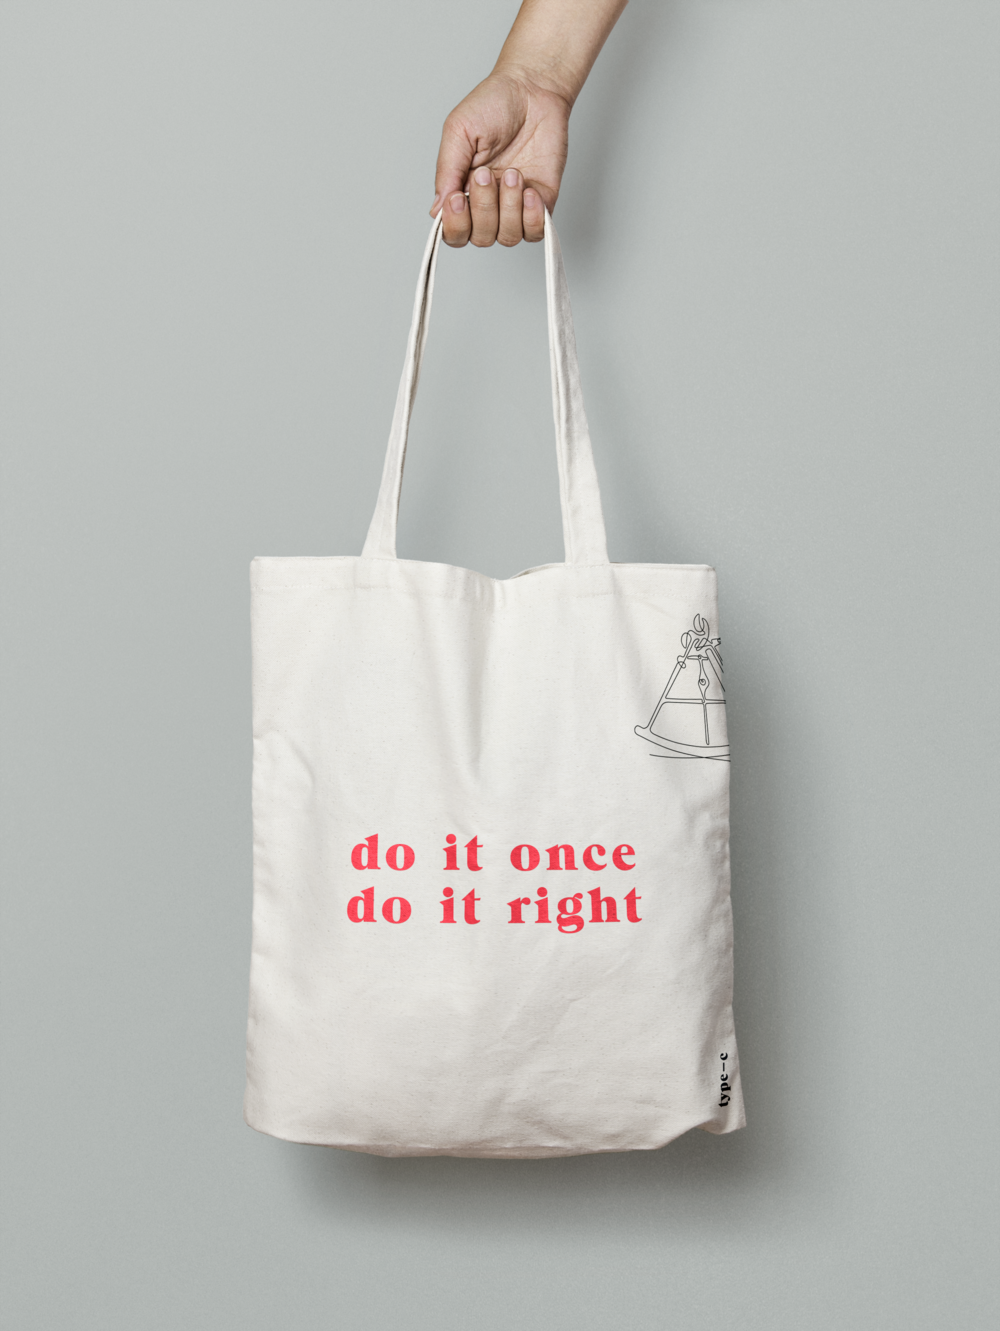 Do it once, do it right tagline on a tote bag for Type C Consulting.png